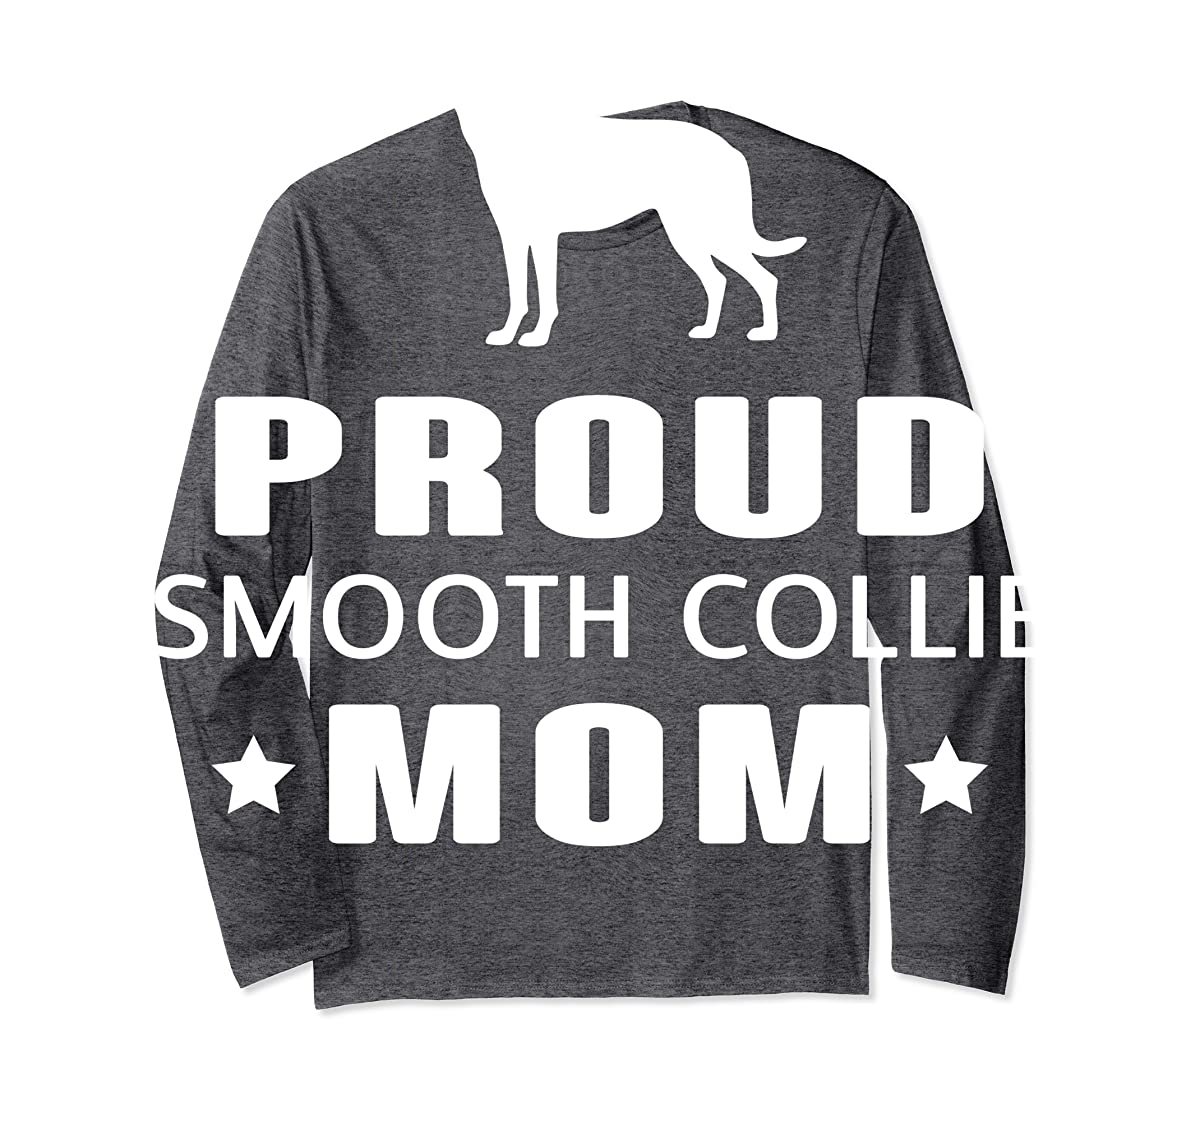 Smooth Collie Funny T-Shirts For Dog Lovers-Long Sleeve-Dark Heather